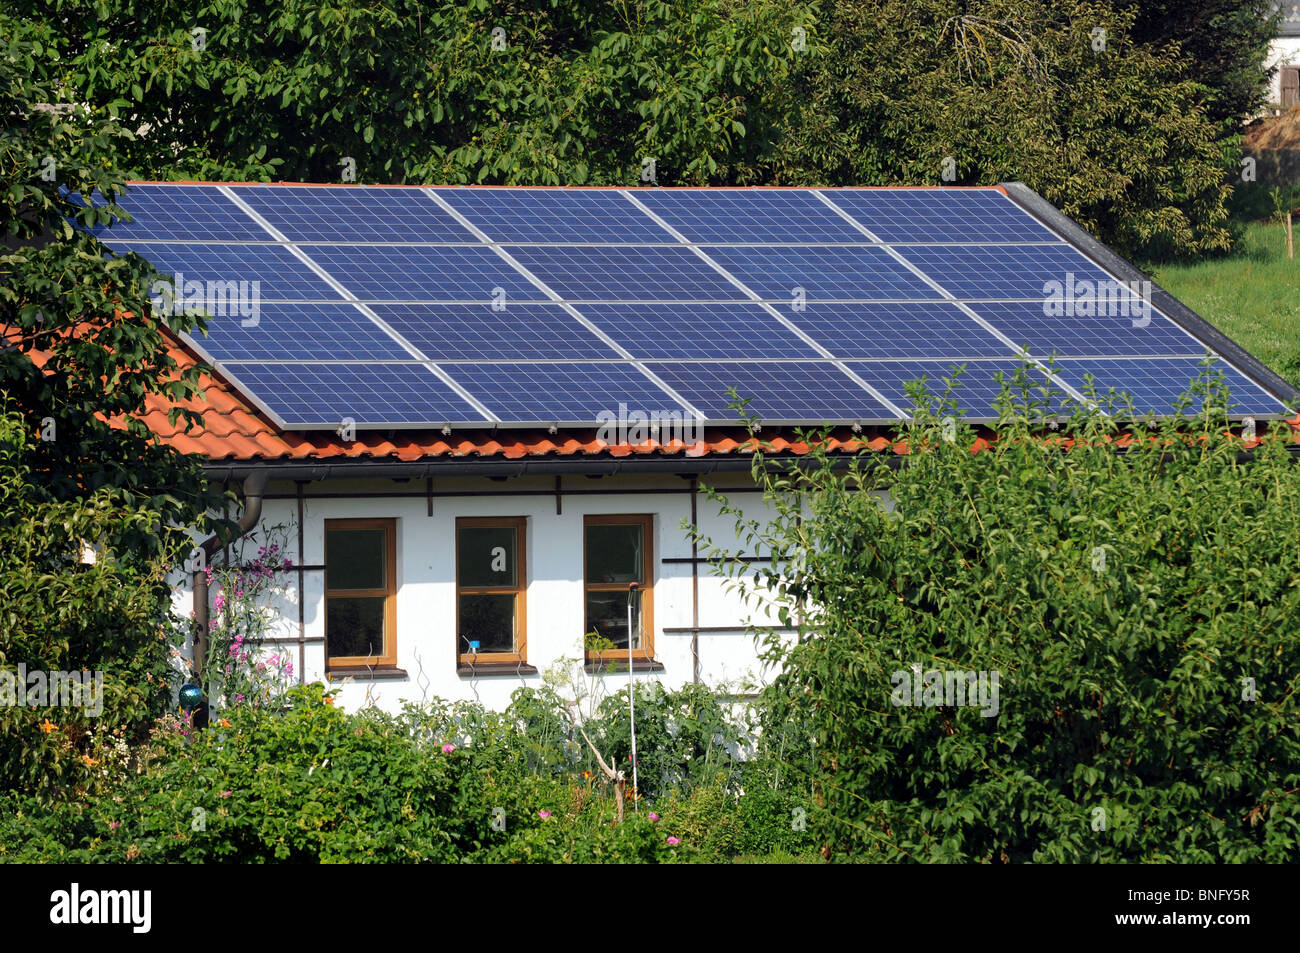 solar panel on roof garage stockfotos solar panel on roof garage bilder alamy. Black Bedroom Furniture Sets. Home Design Ideas